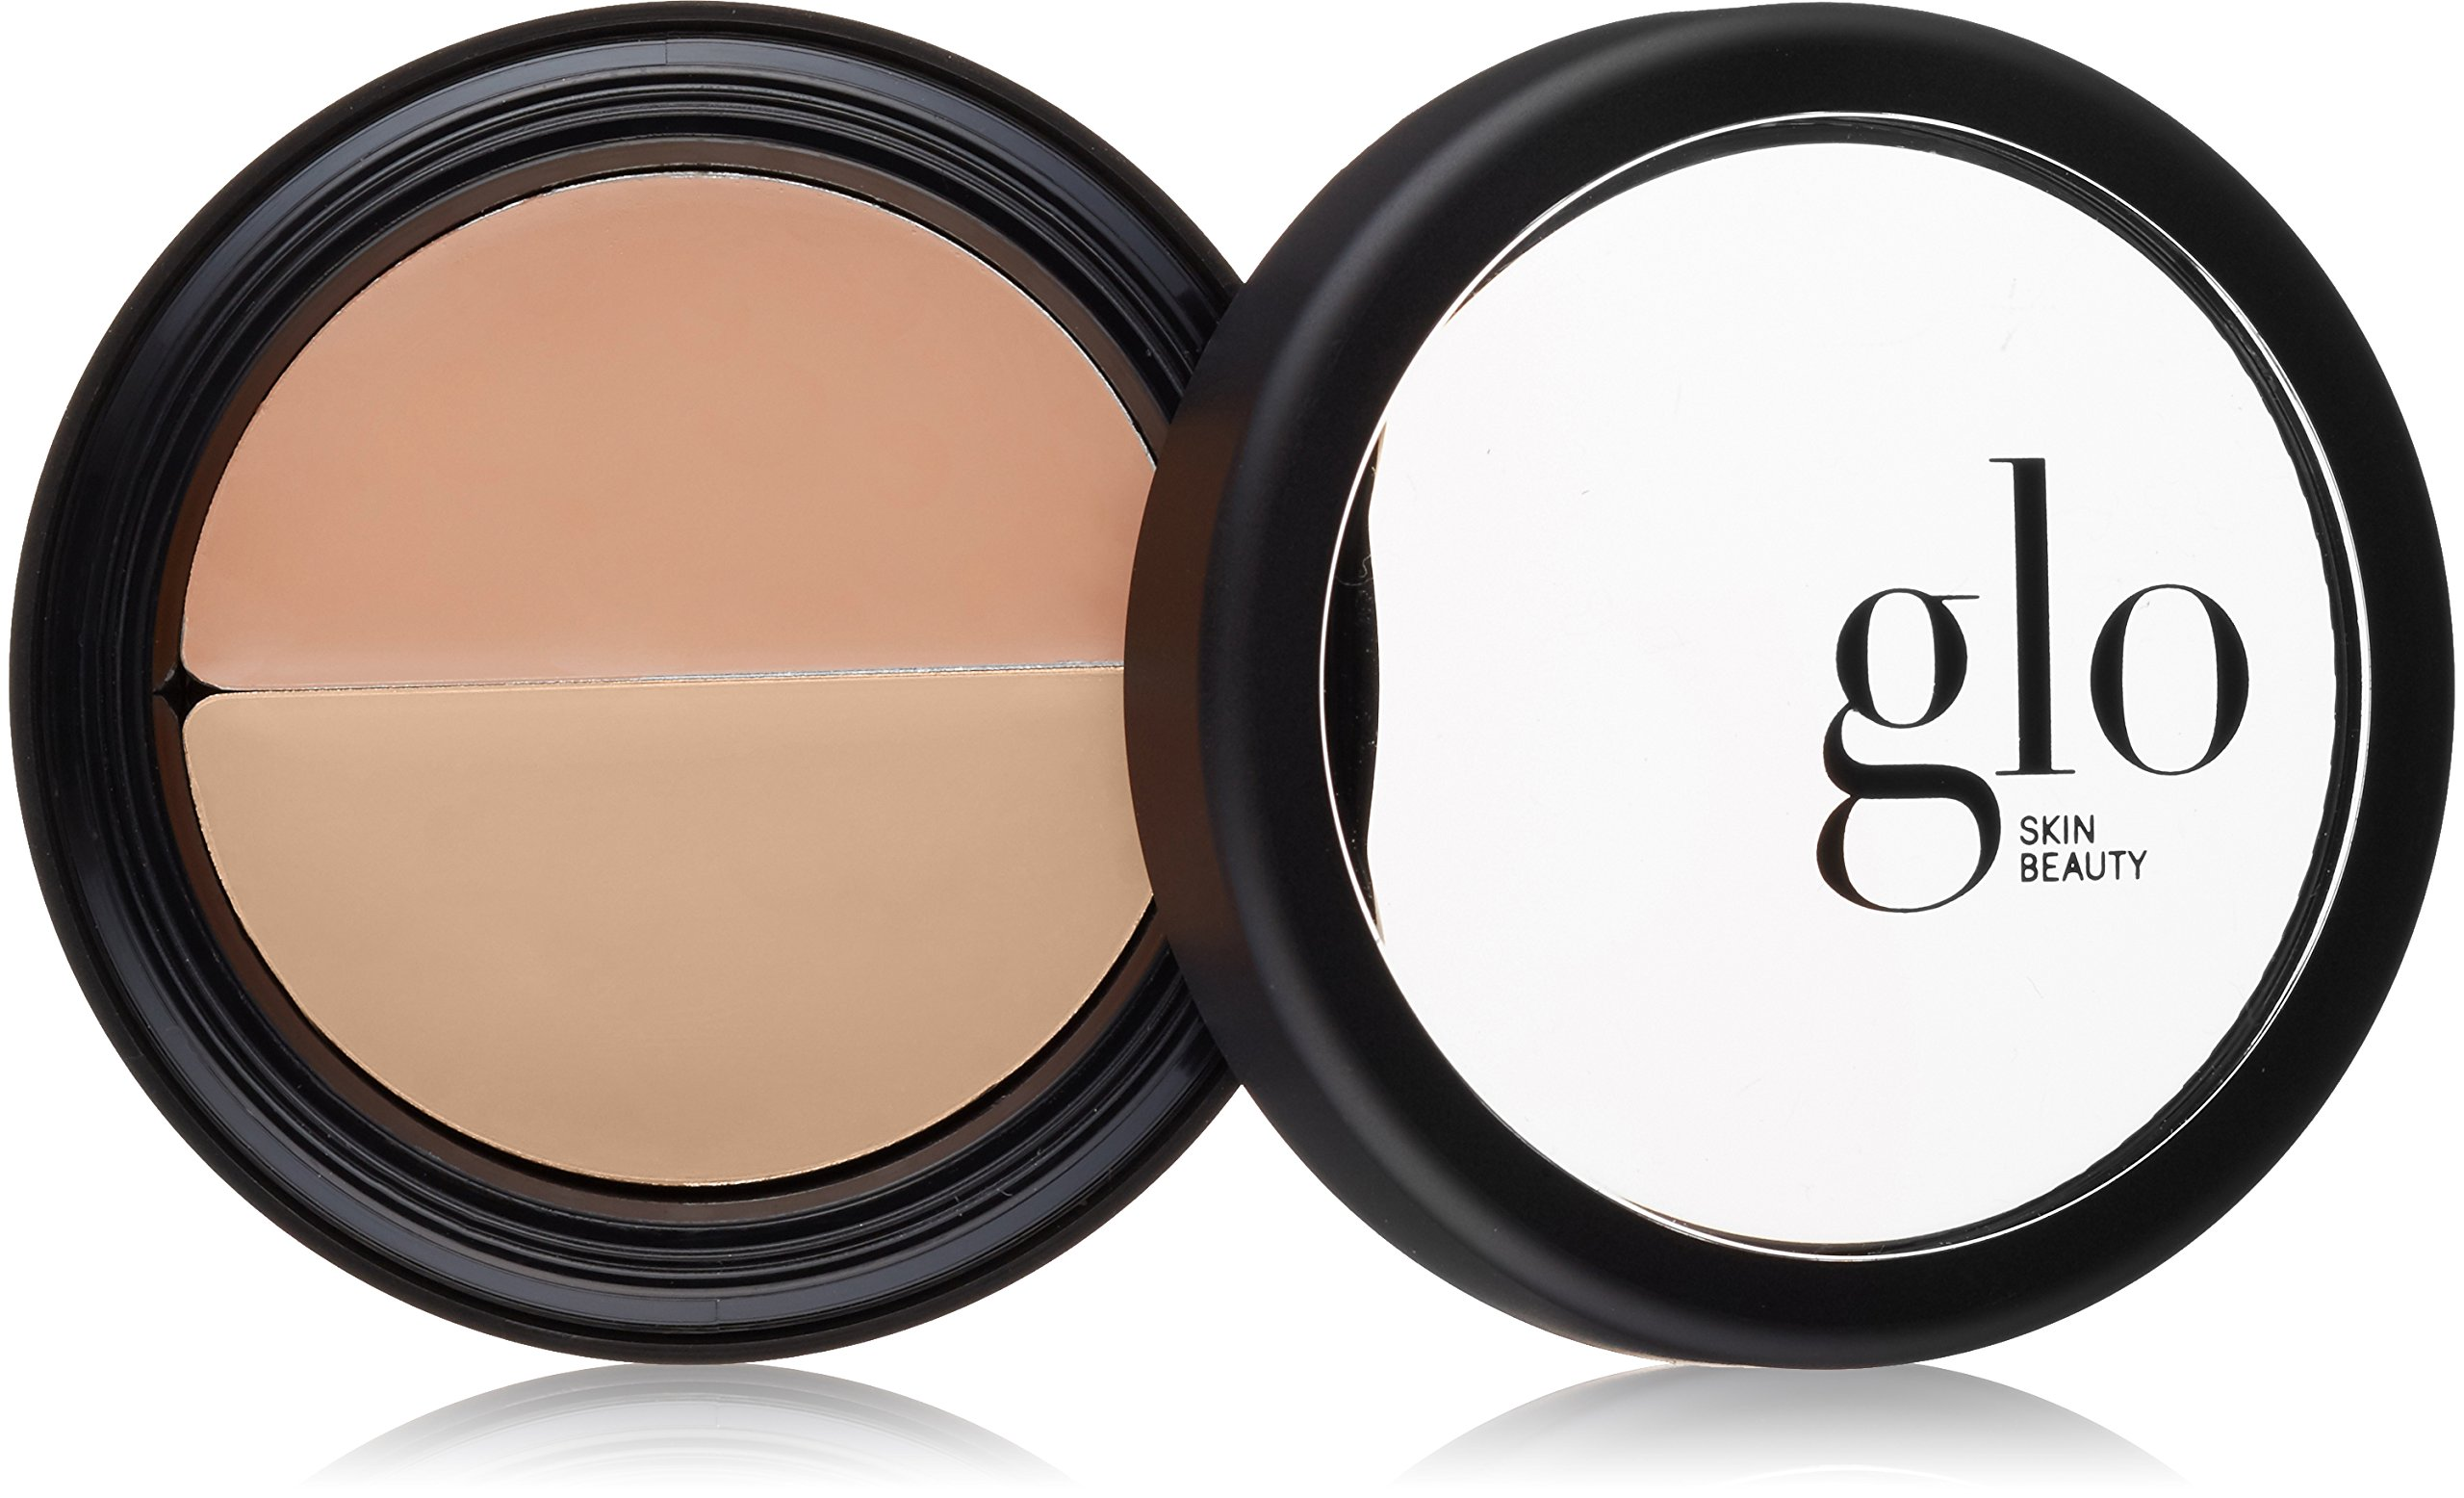 Glo Skin Beauty Under Eye Concealer - Beige - Mineral Makeup Concealer, 4 Shades | Cruelty Free